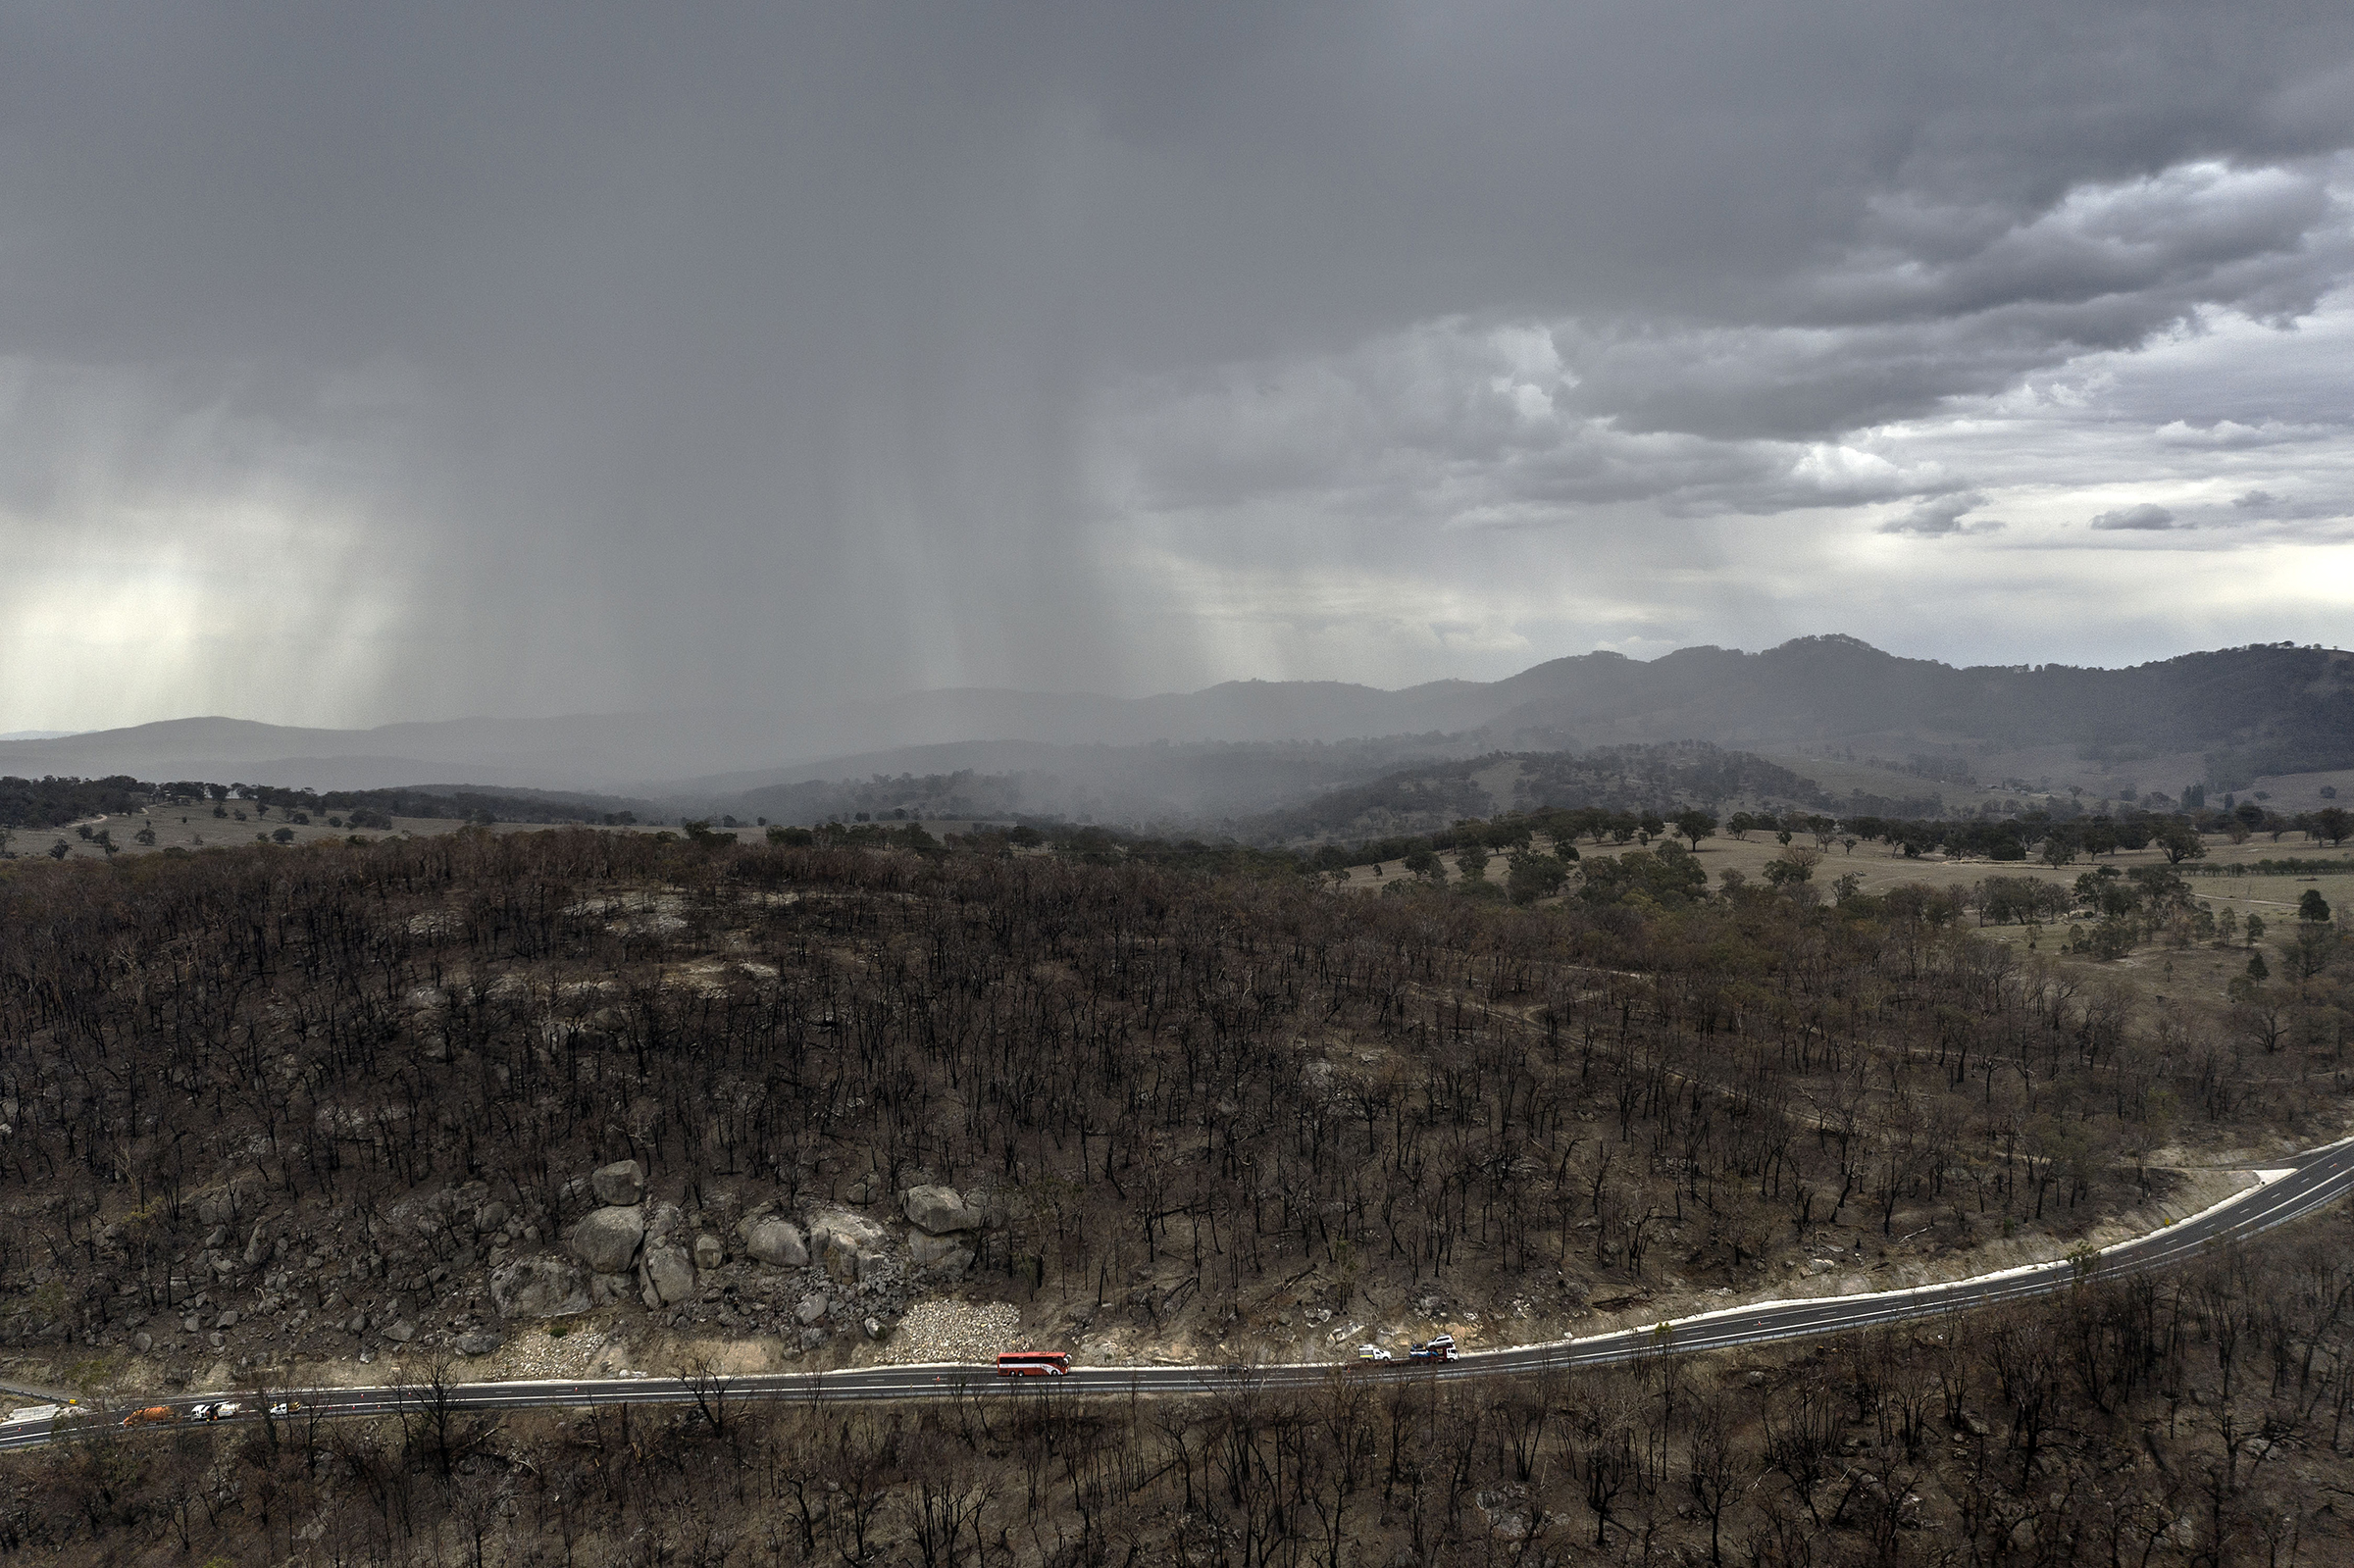 Rain begins to fall on drought and fire-ravaged country near Tamworth, Australia ahead of predicted further wet weather across NSW and Victoria this week, seen here on Jan. 15, 2020.